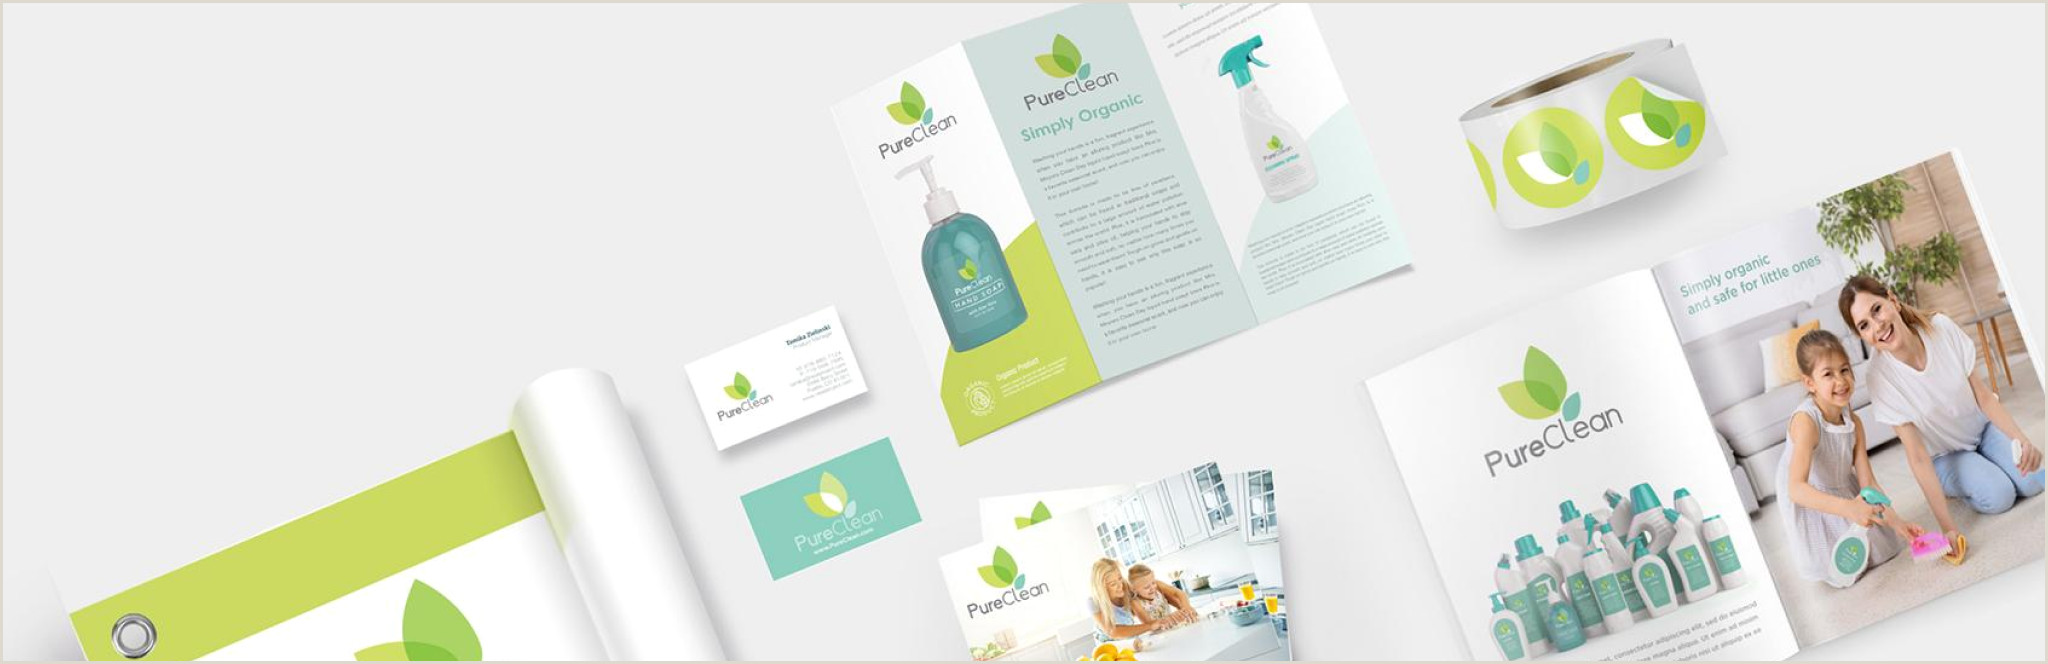 Best Affordable Business Cards Printplace High Quality Line Printing Services